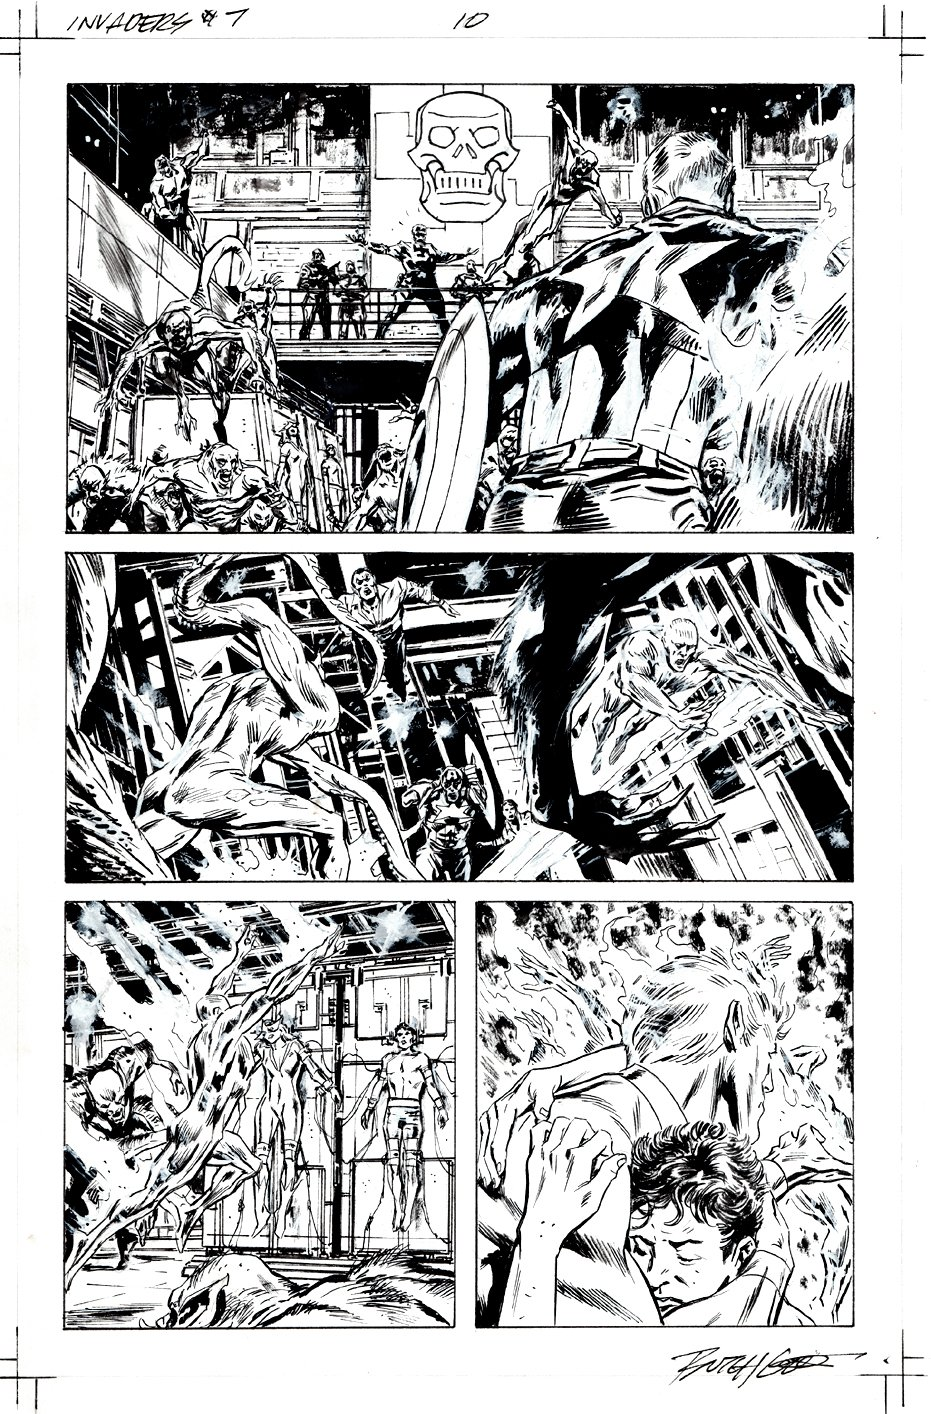 Invaders #7 p 10 (Sub-Mariner, Captain America, Human Torch Save The Invaders From Nazis!) 2019